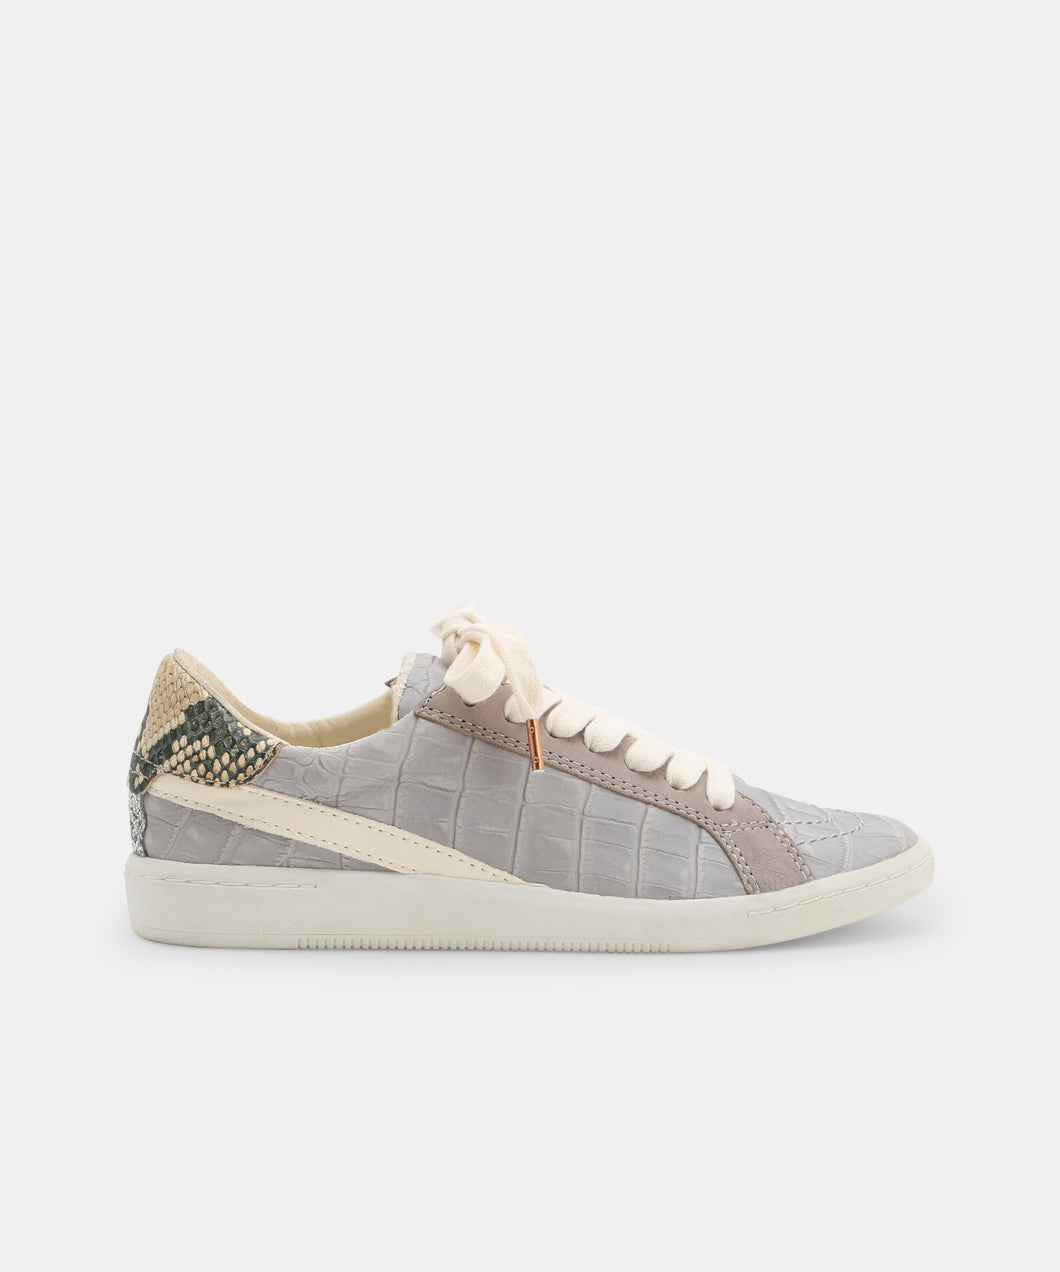 NINO SNEAKERS IN GREY -   Dolce Vita